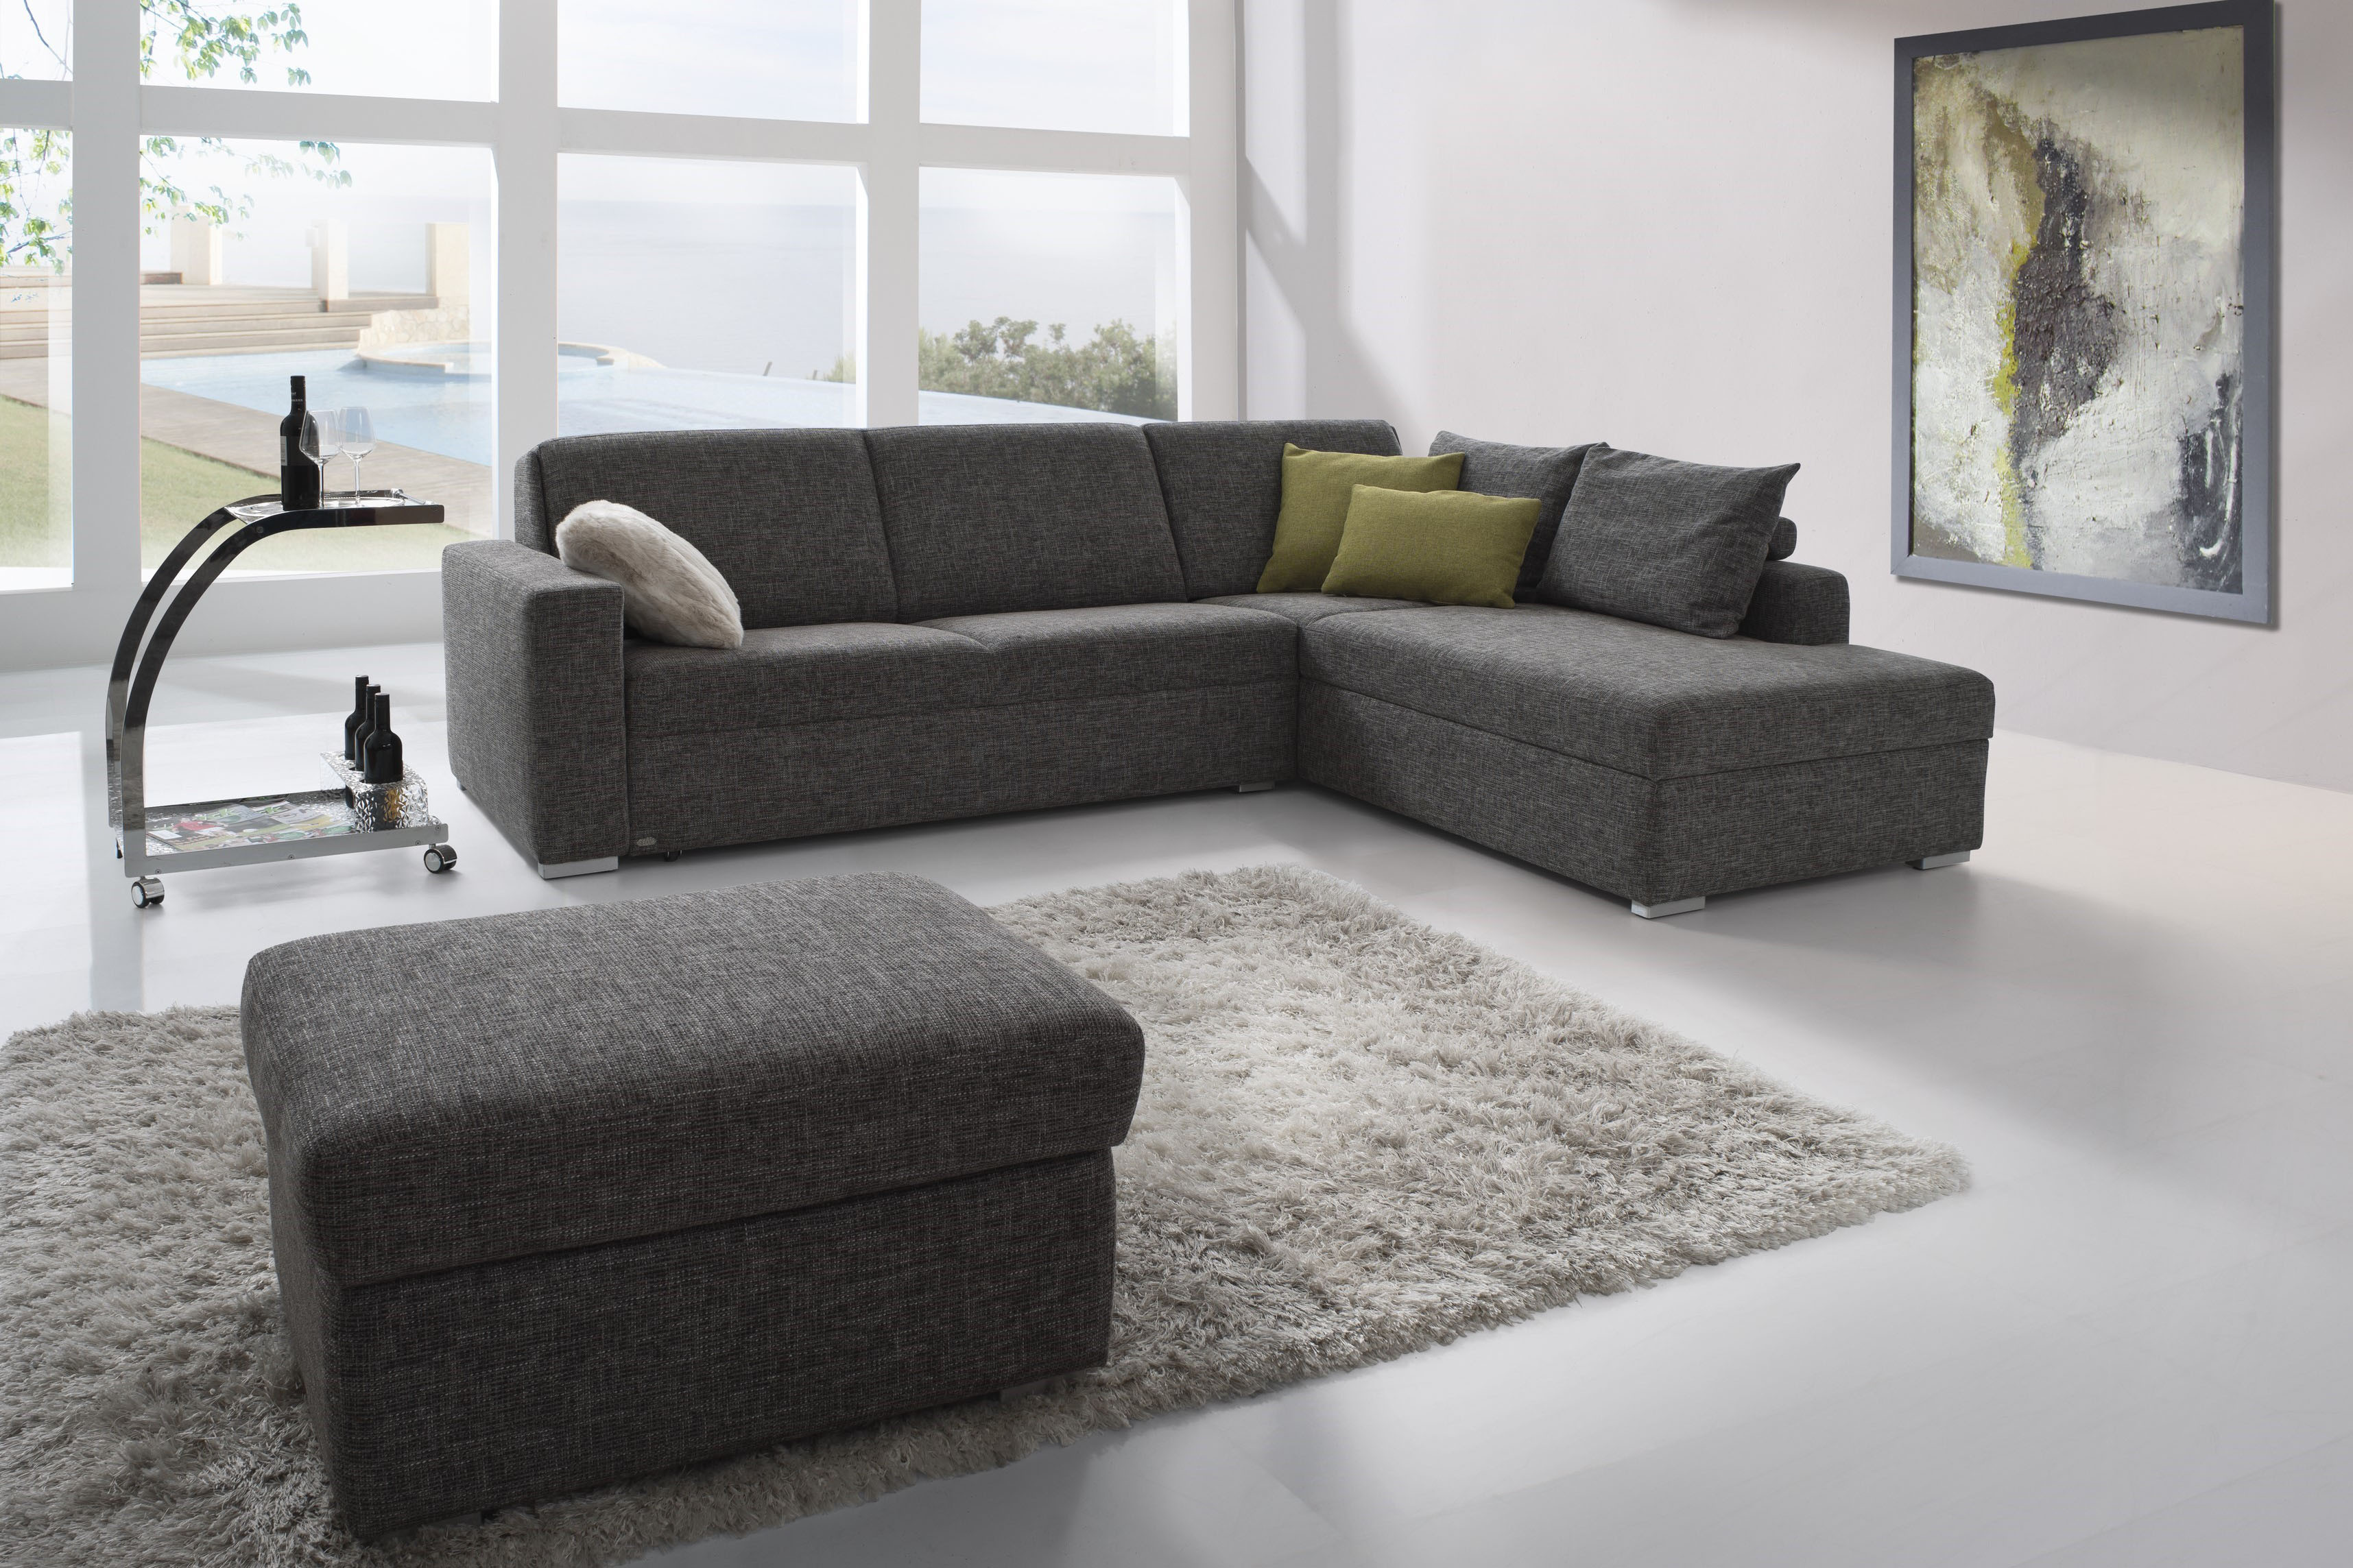 schlafsofa impuls von sedda schlafsofas g nstig online kaufen sofa couch schlafsofa zum. Black Bedroom Furniture Sets. Home Design Ideas